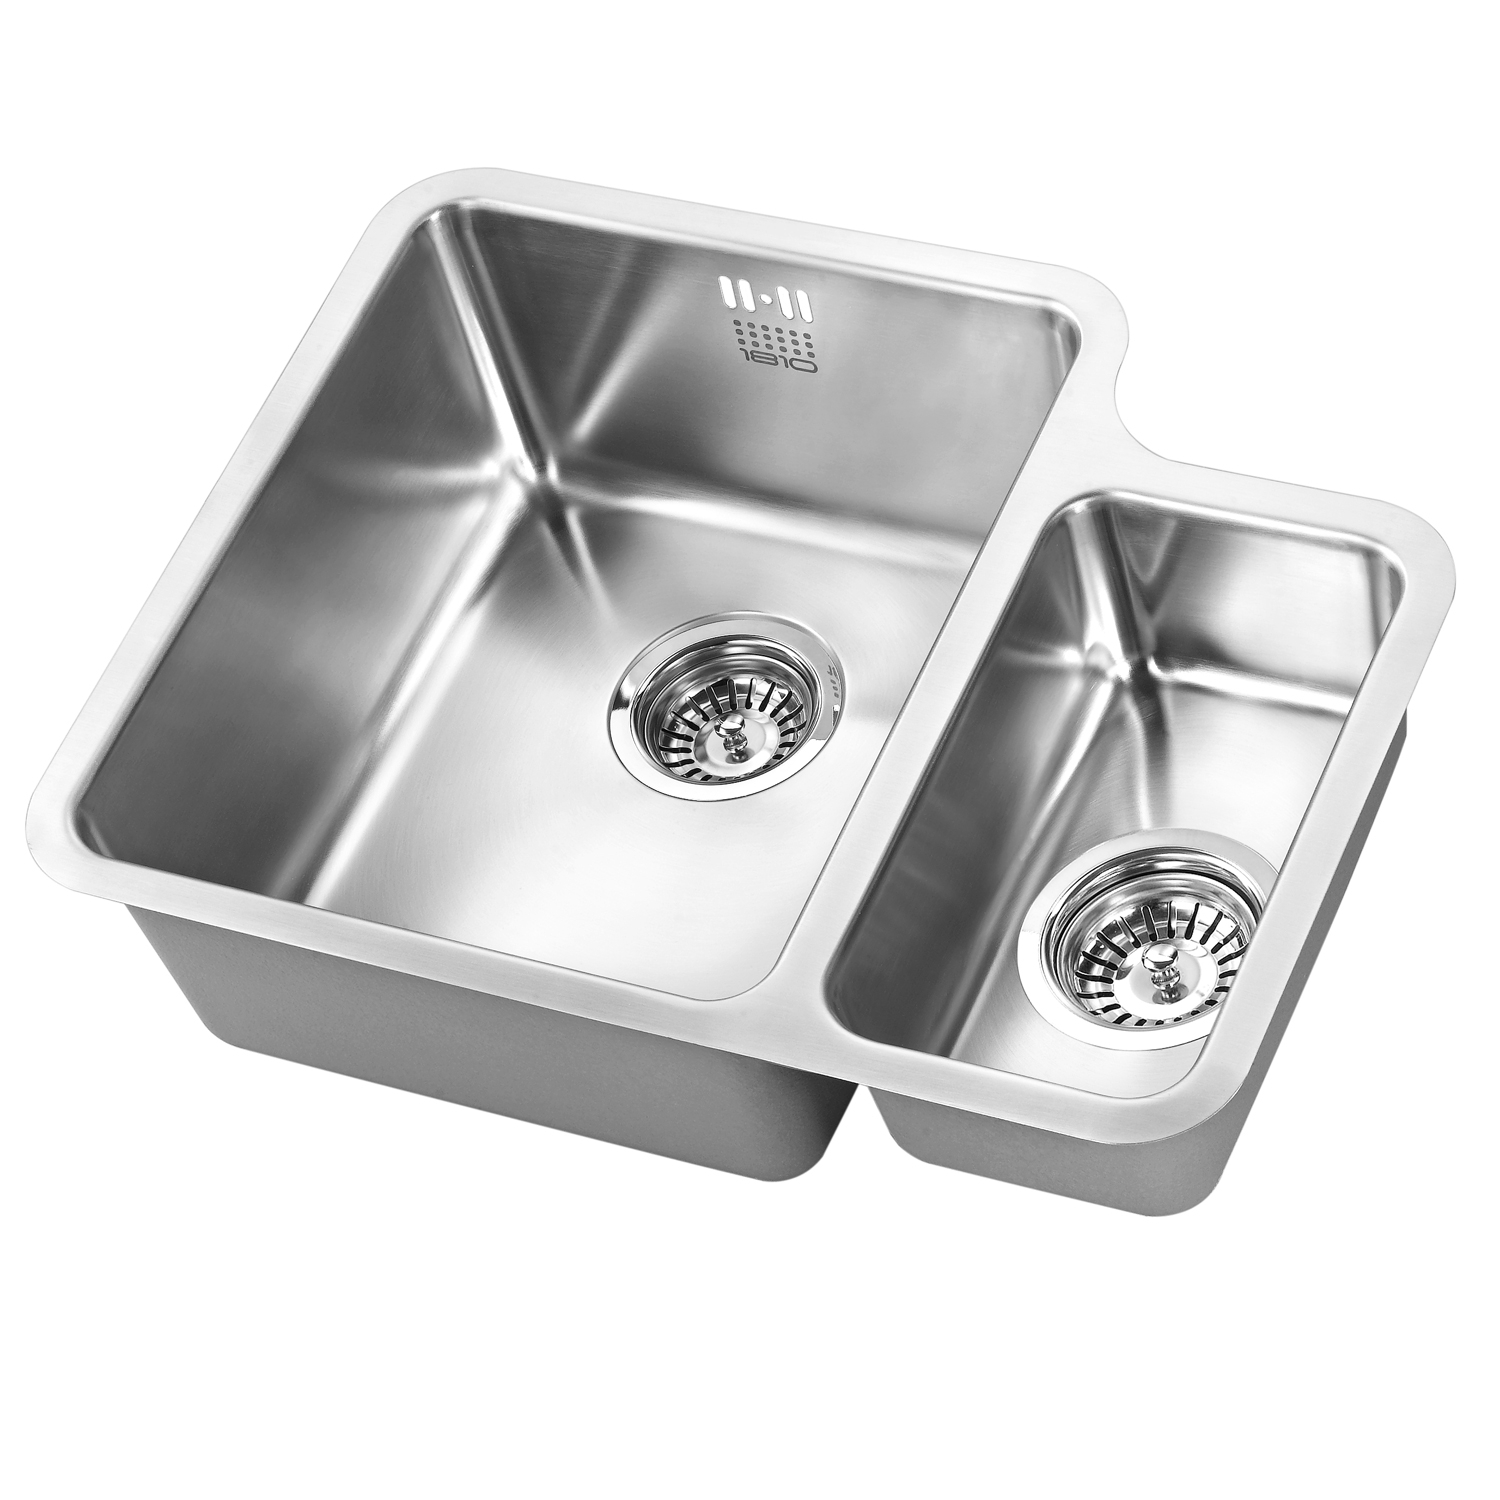 The 1810 Company Luxsoduo25 340/160U 1.5 Bowl Kitchen Sink - Left Handed